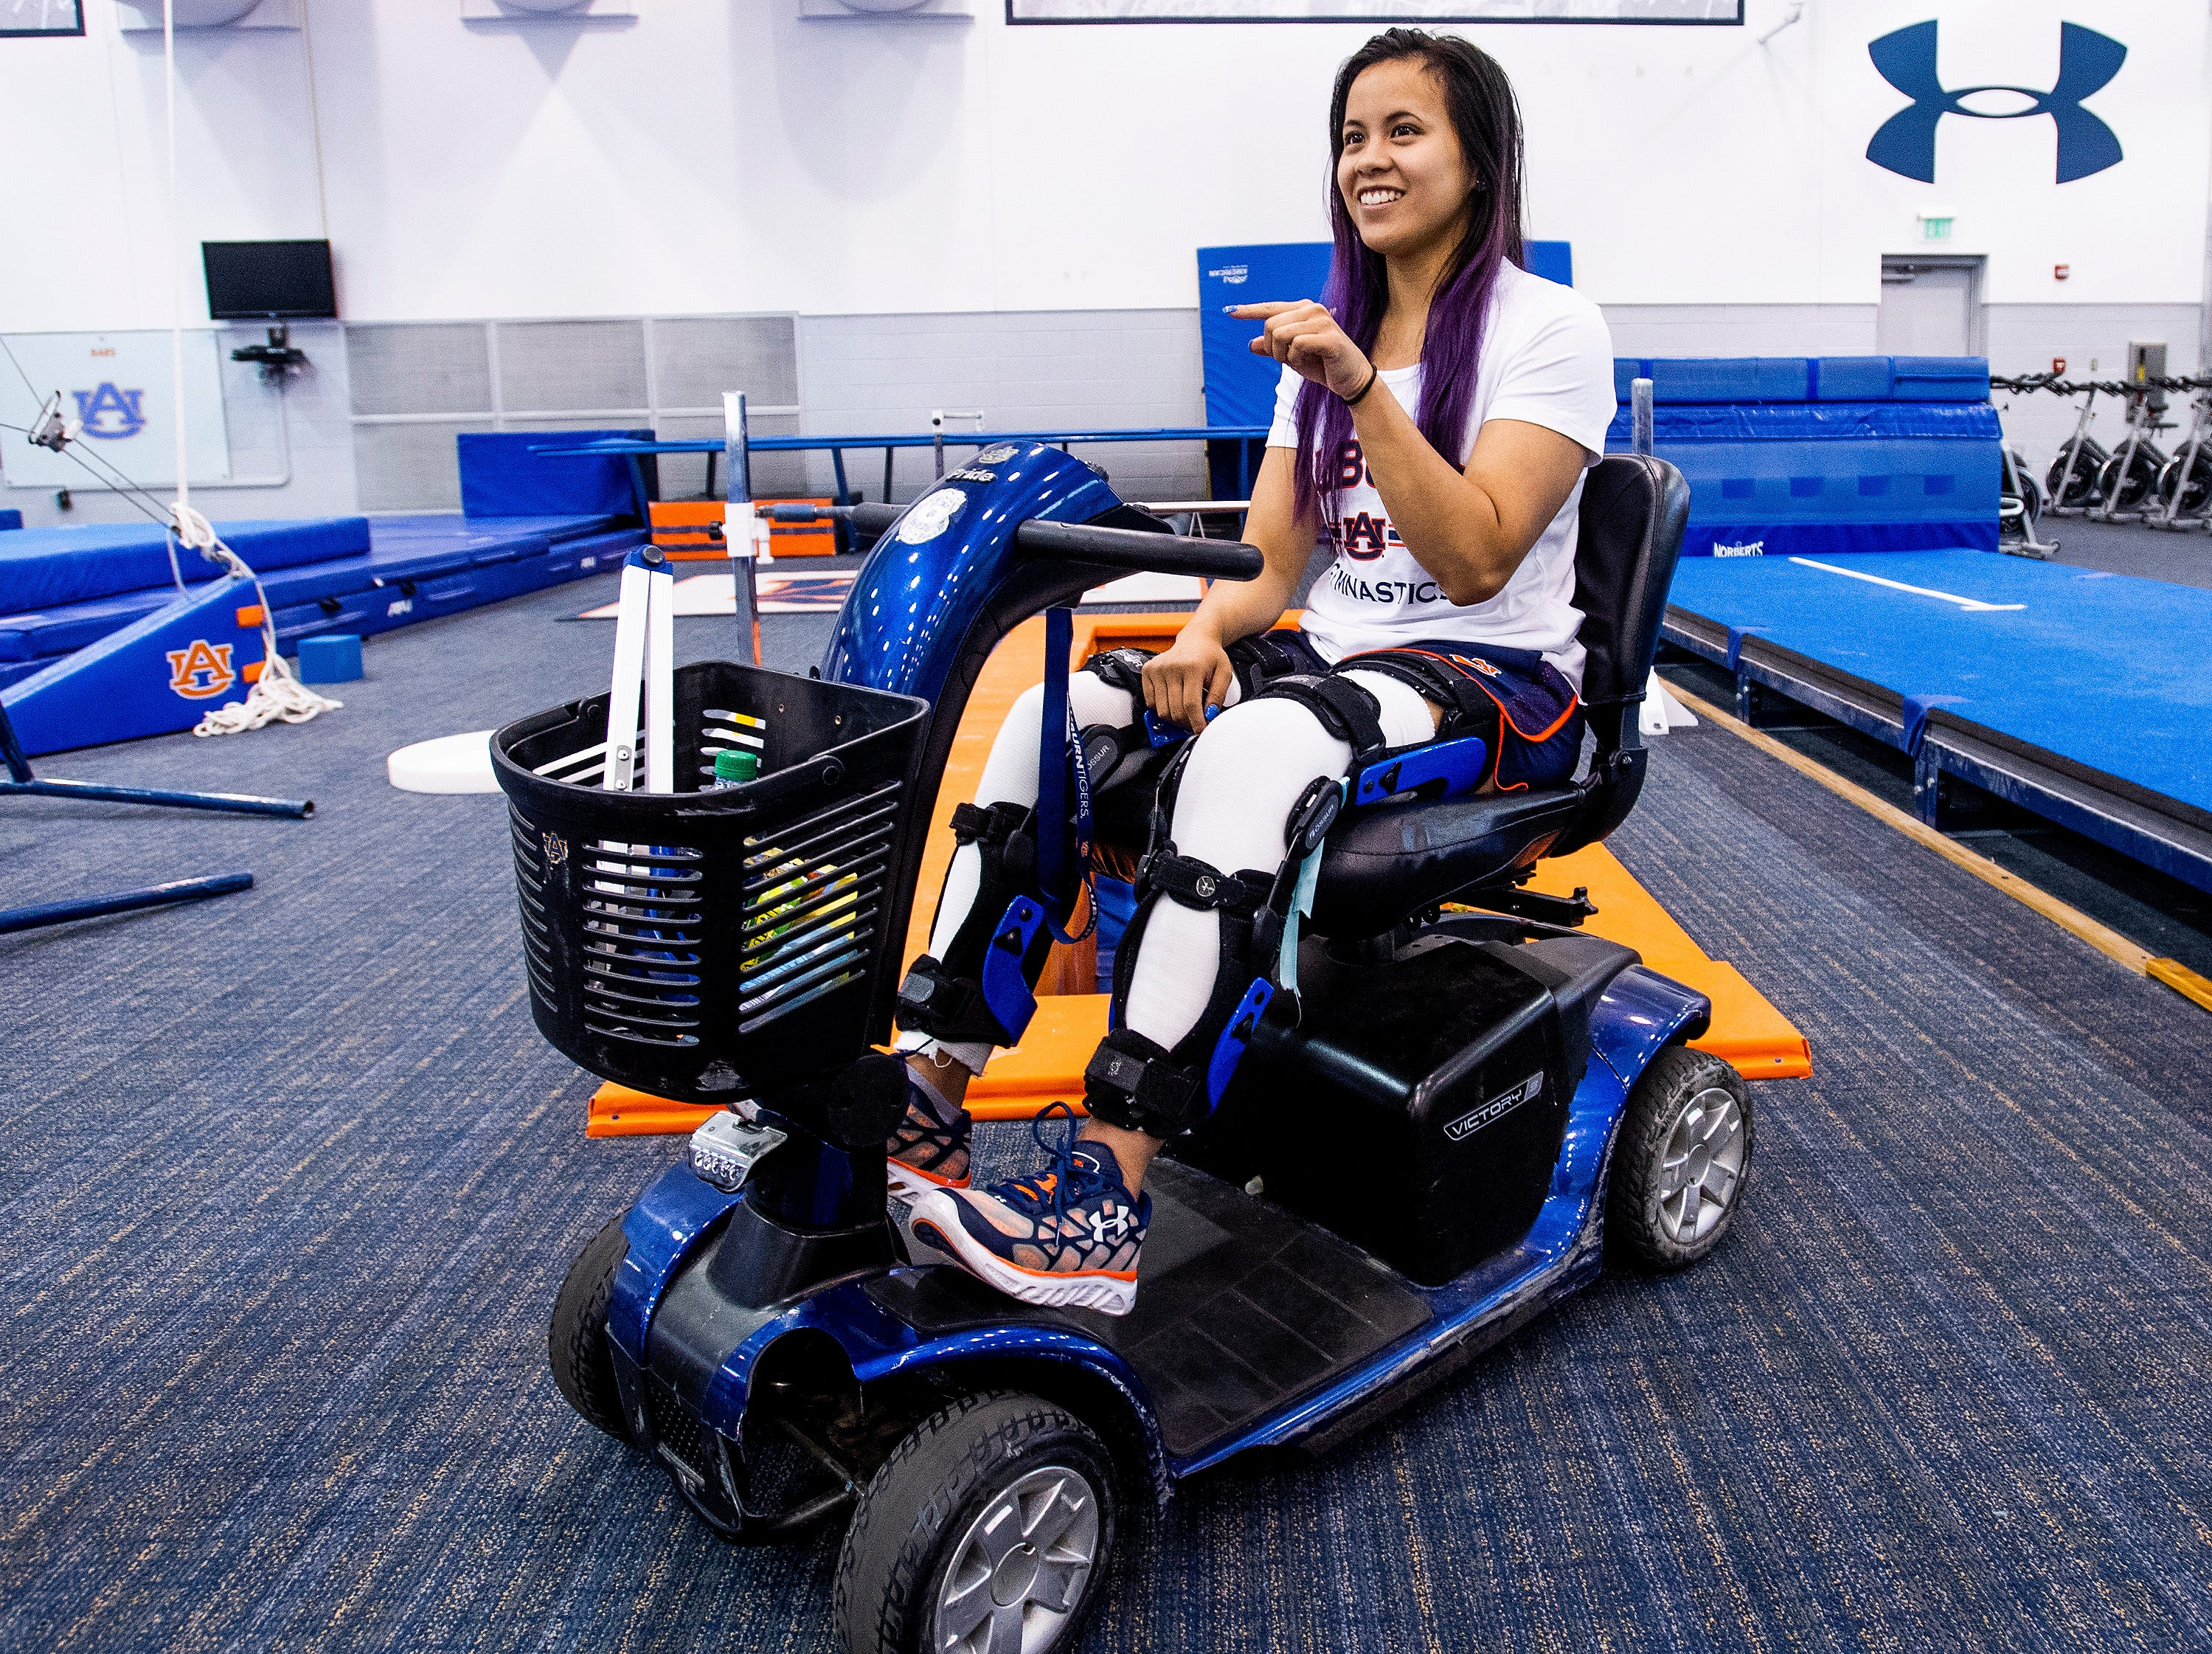 Auburn university gymnast Sam Cerio gets around on a scooter in the women's gymnastics practice facility on the AU campus in Auburn, Ala., on Thursday May 9, 2019. Cerio, who recently graduated with a degree in aerospace engineering, dislocated both of her knees and ruptured multiple ligaments in her legs during an NCAA regional semifinal meet.